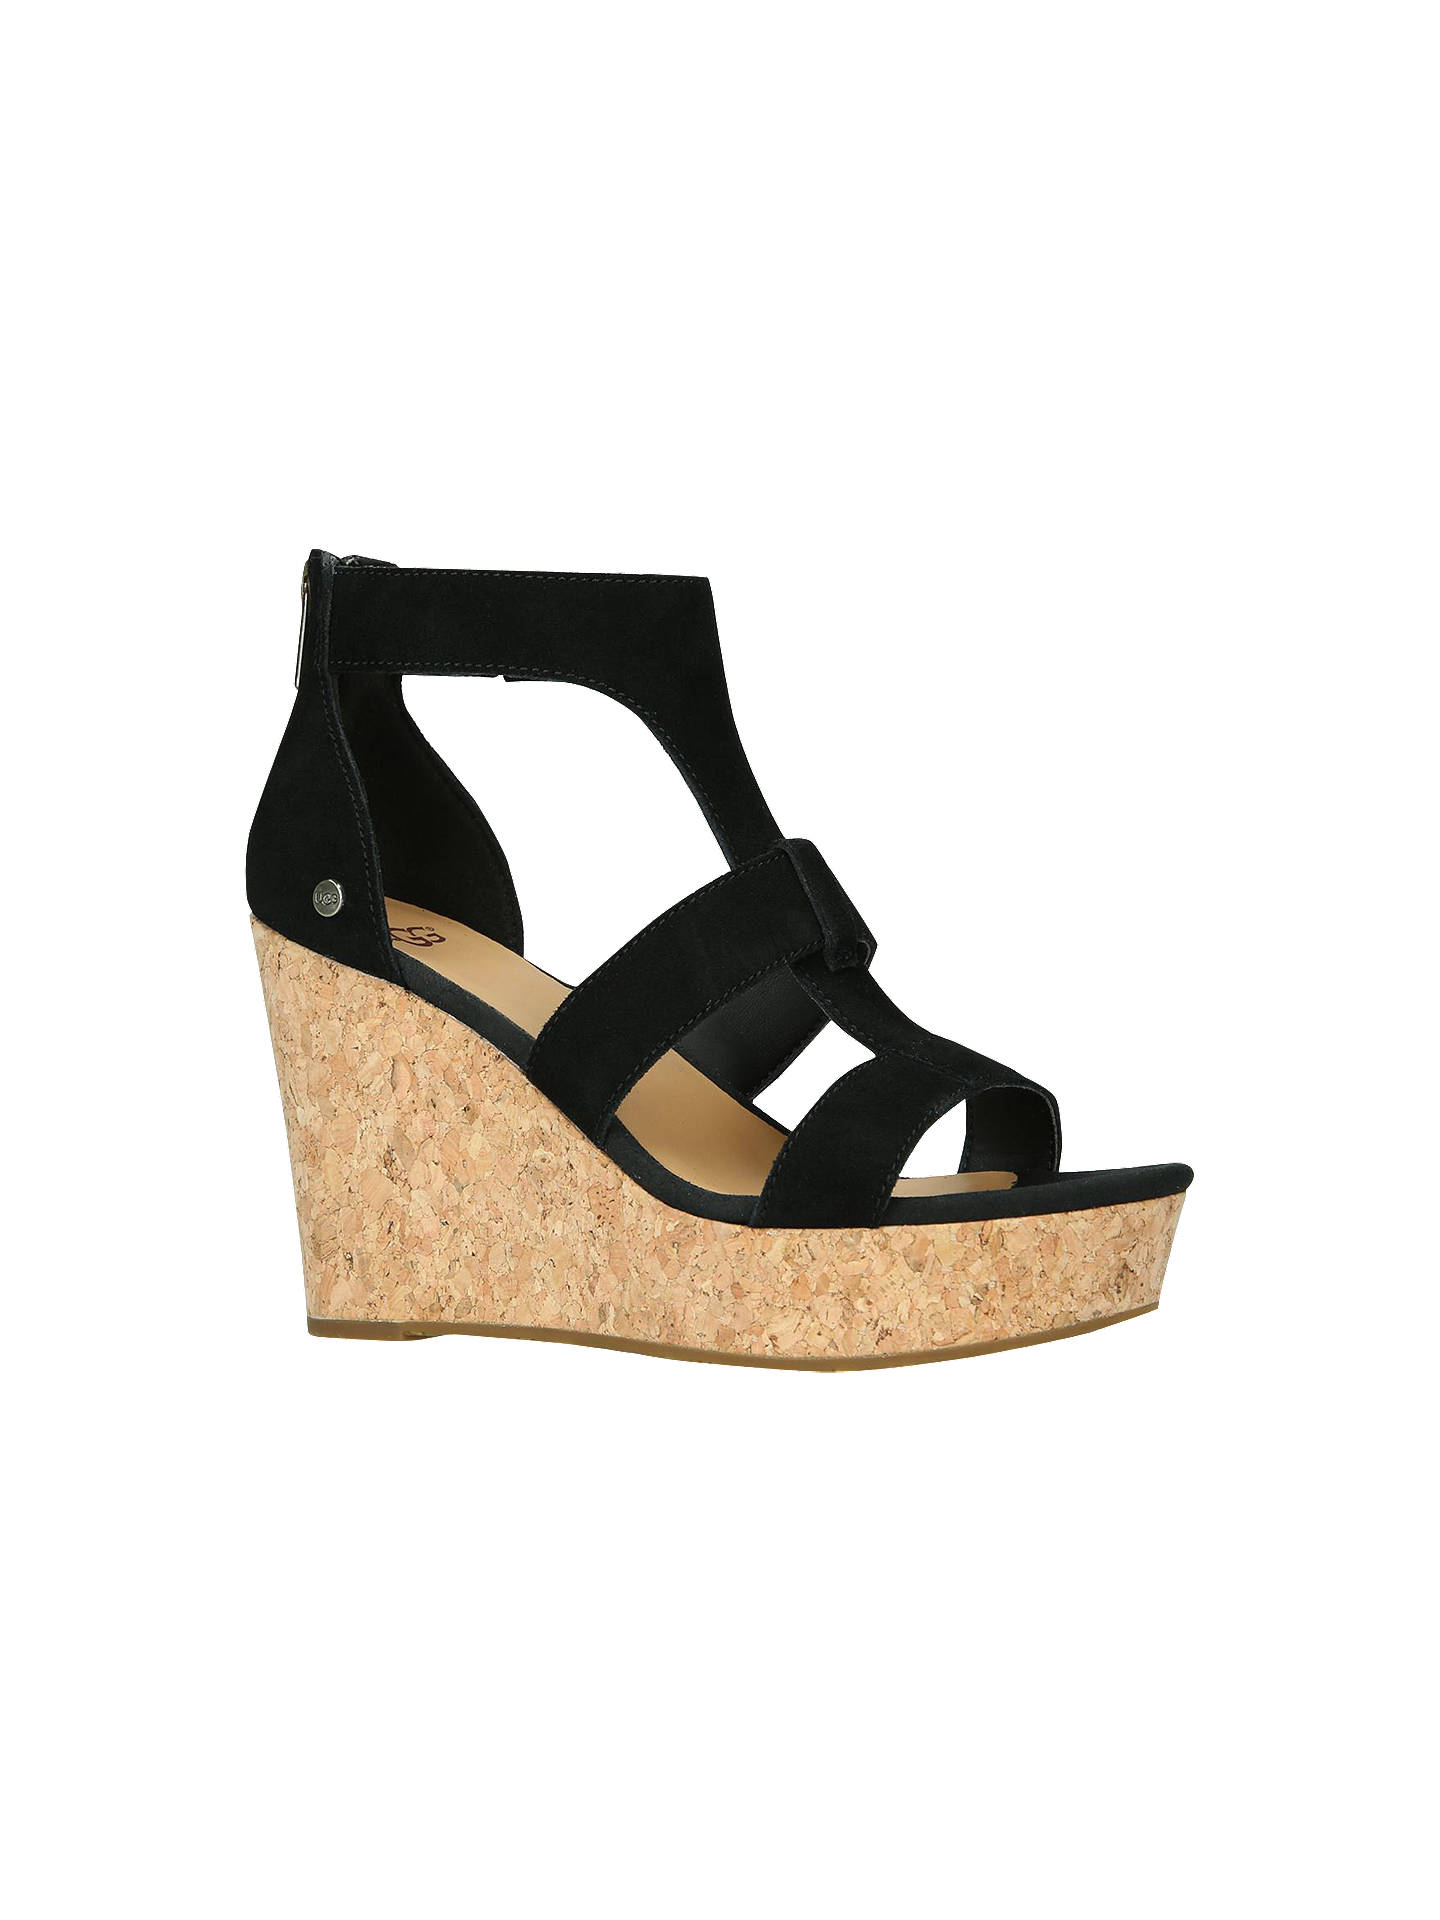 a183a236f2a9 UGG Whitney Wedge Heel Sandals at John Lewis   Partners